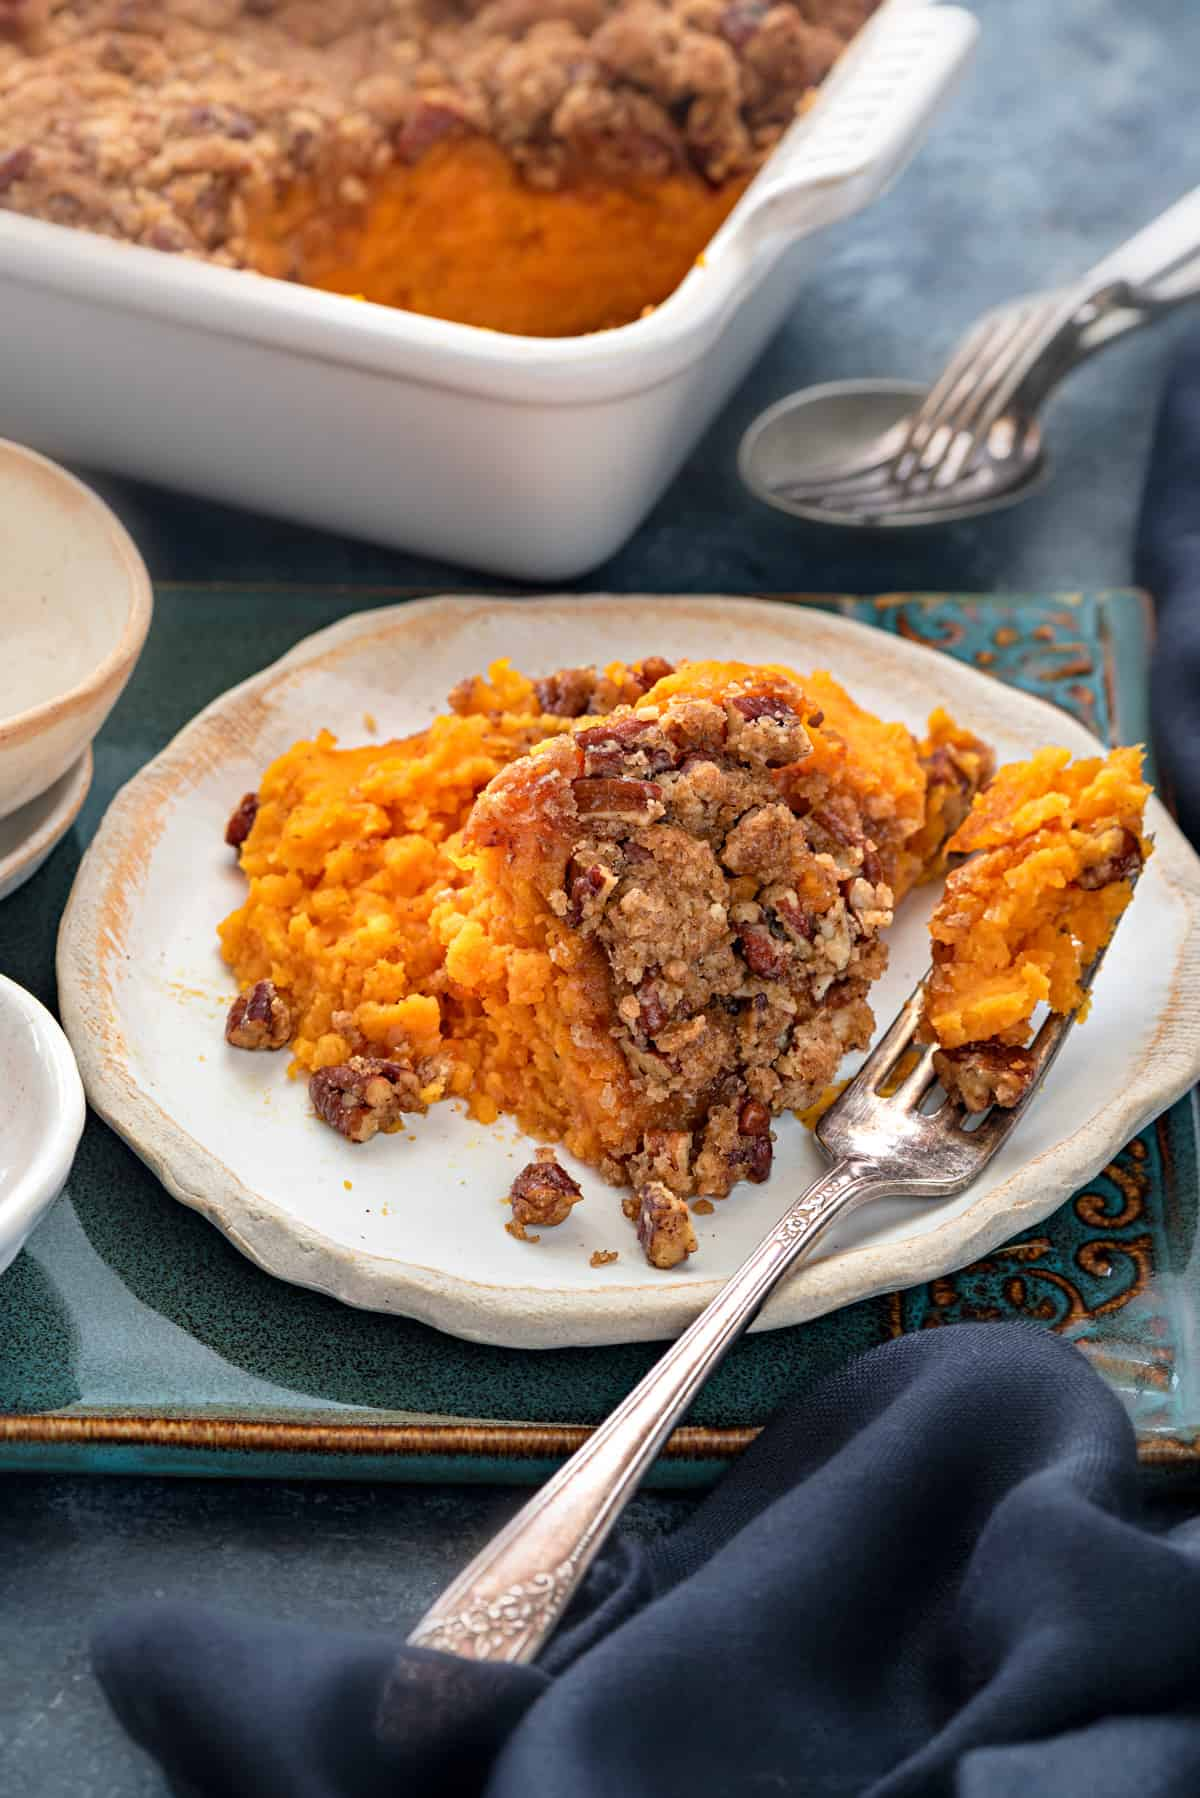 A small ceramic plate with a heaping scoop of sweet potato casserole and fork.